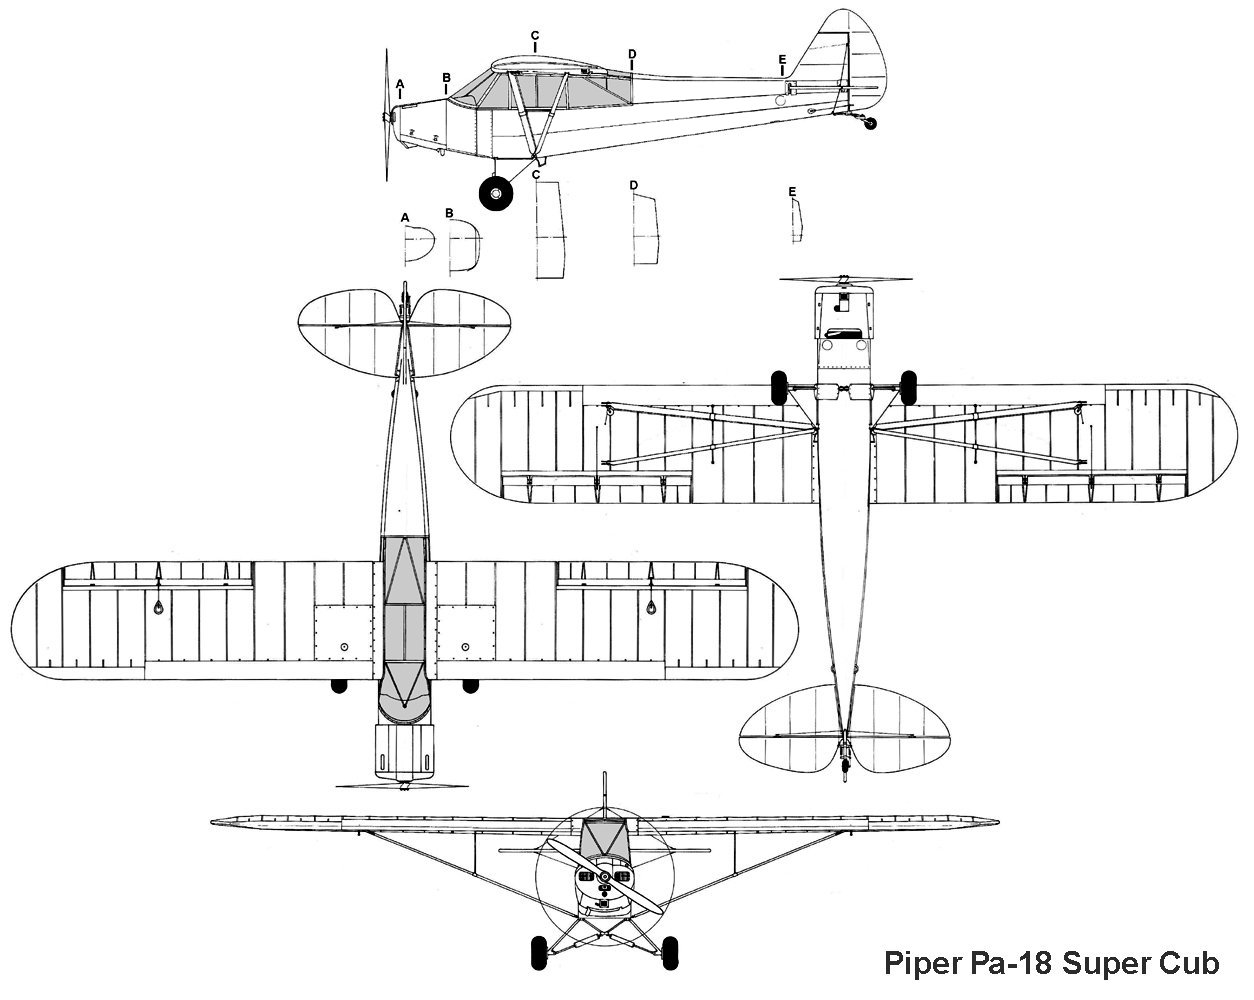 Piper PA-18 Super Cub next